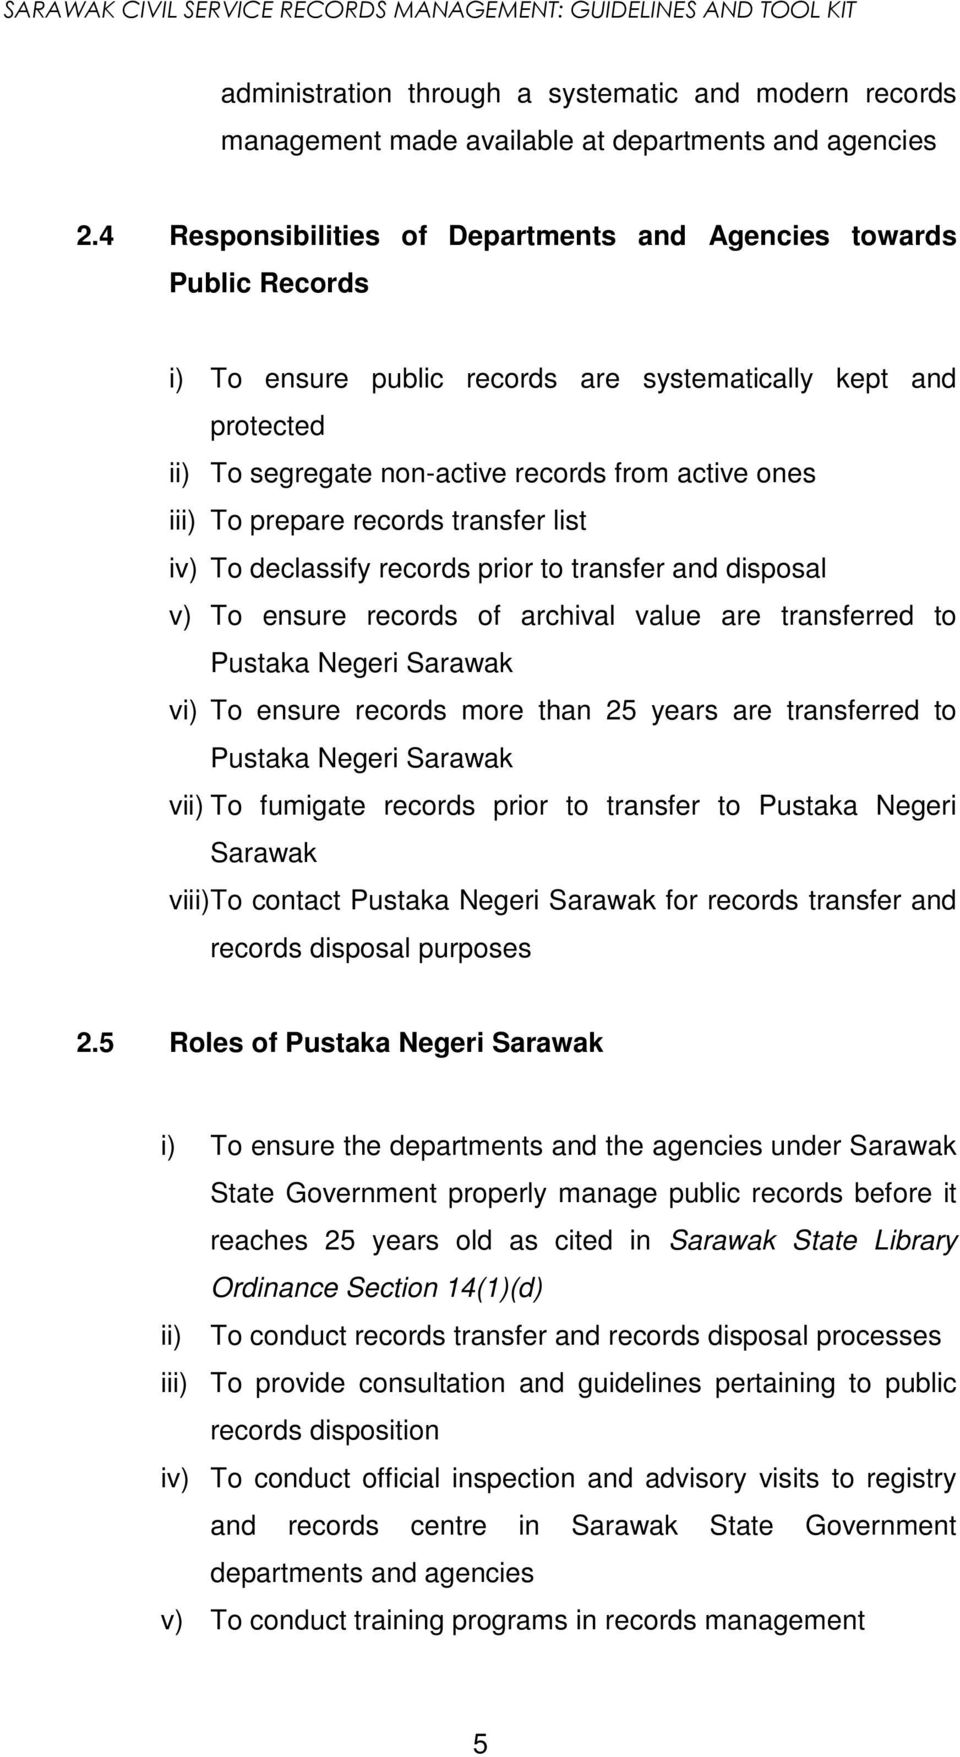 prepare records transfer list iv) To declassify records prior to transfer and disposal v) To ensure records of archival value are transferred to Pustaka Negeri Sarawak vi) To ensure records more than